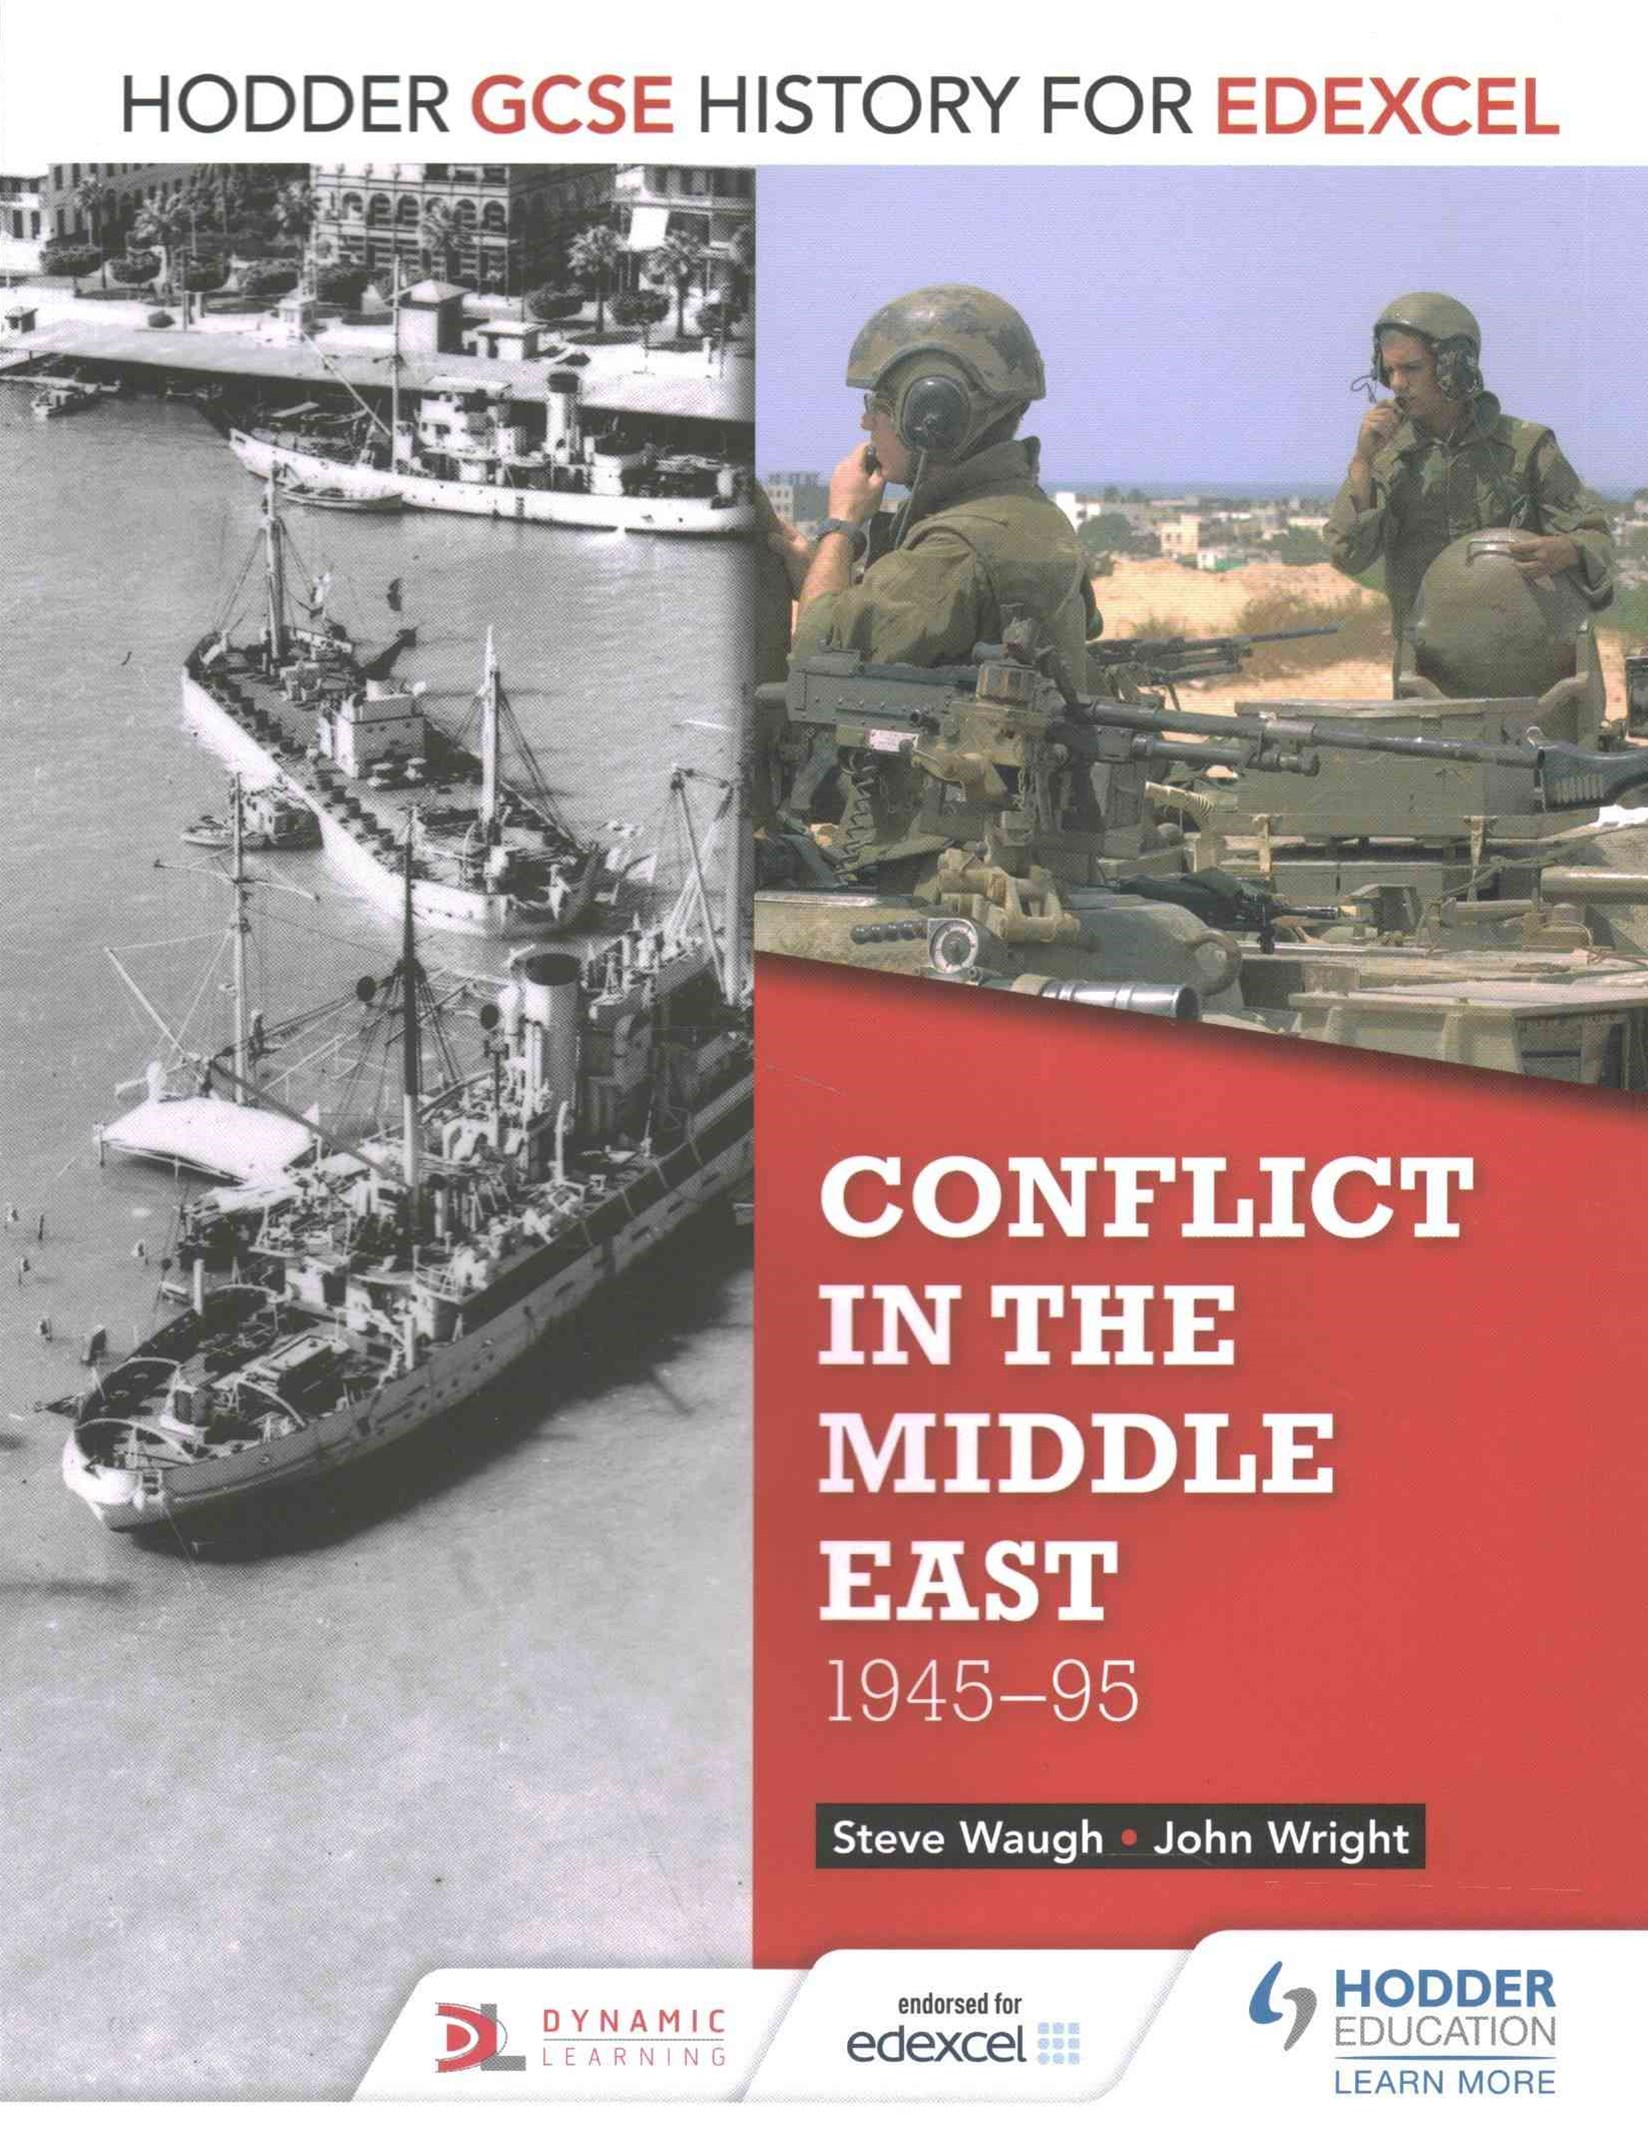 Conflict in the Middle East, 1945-95